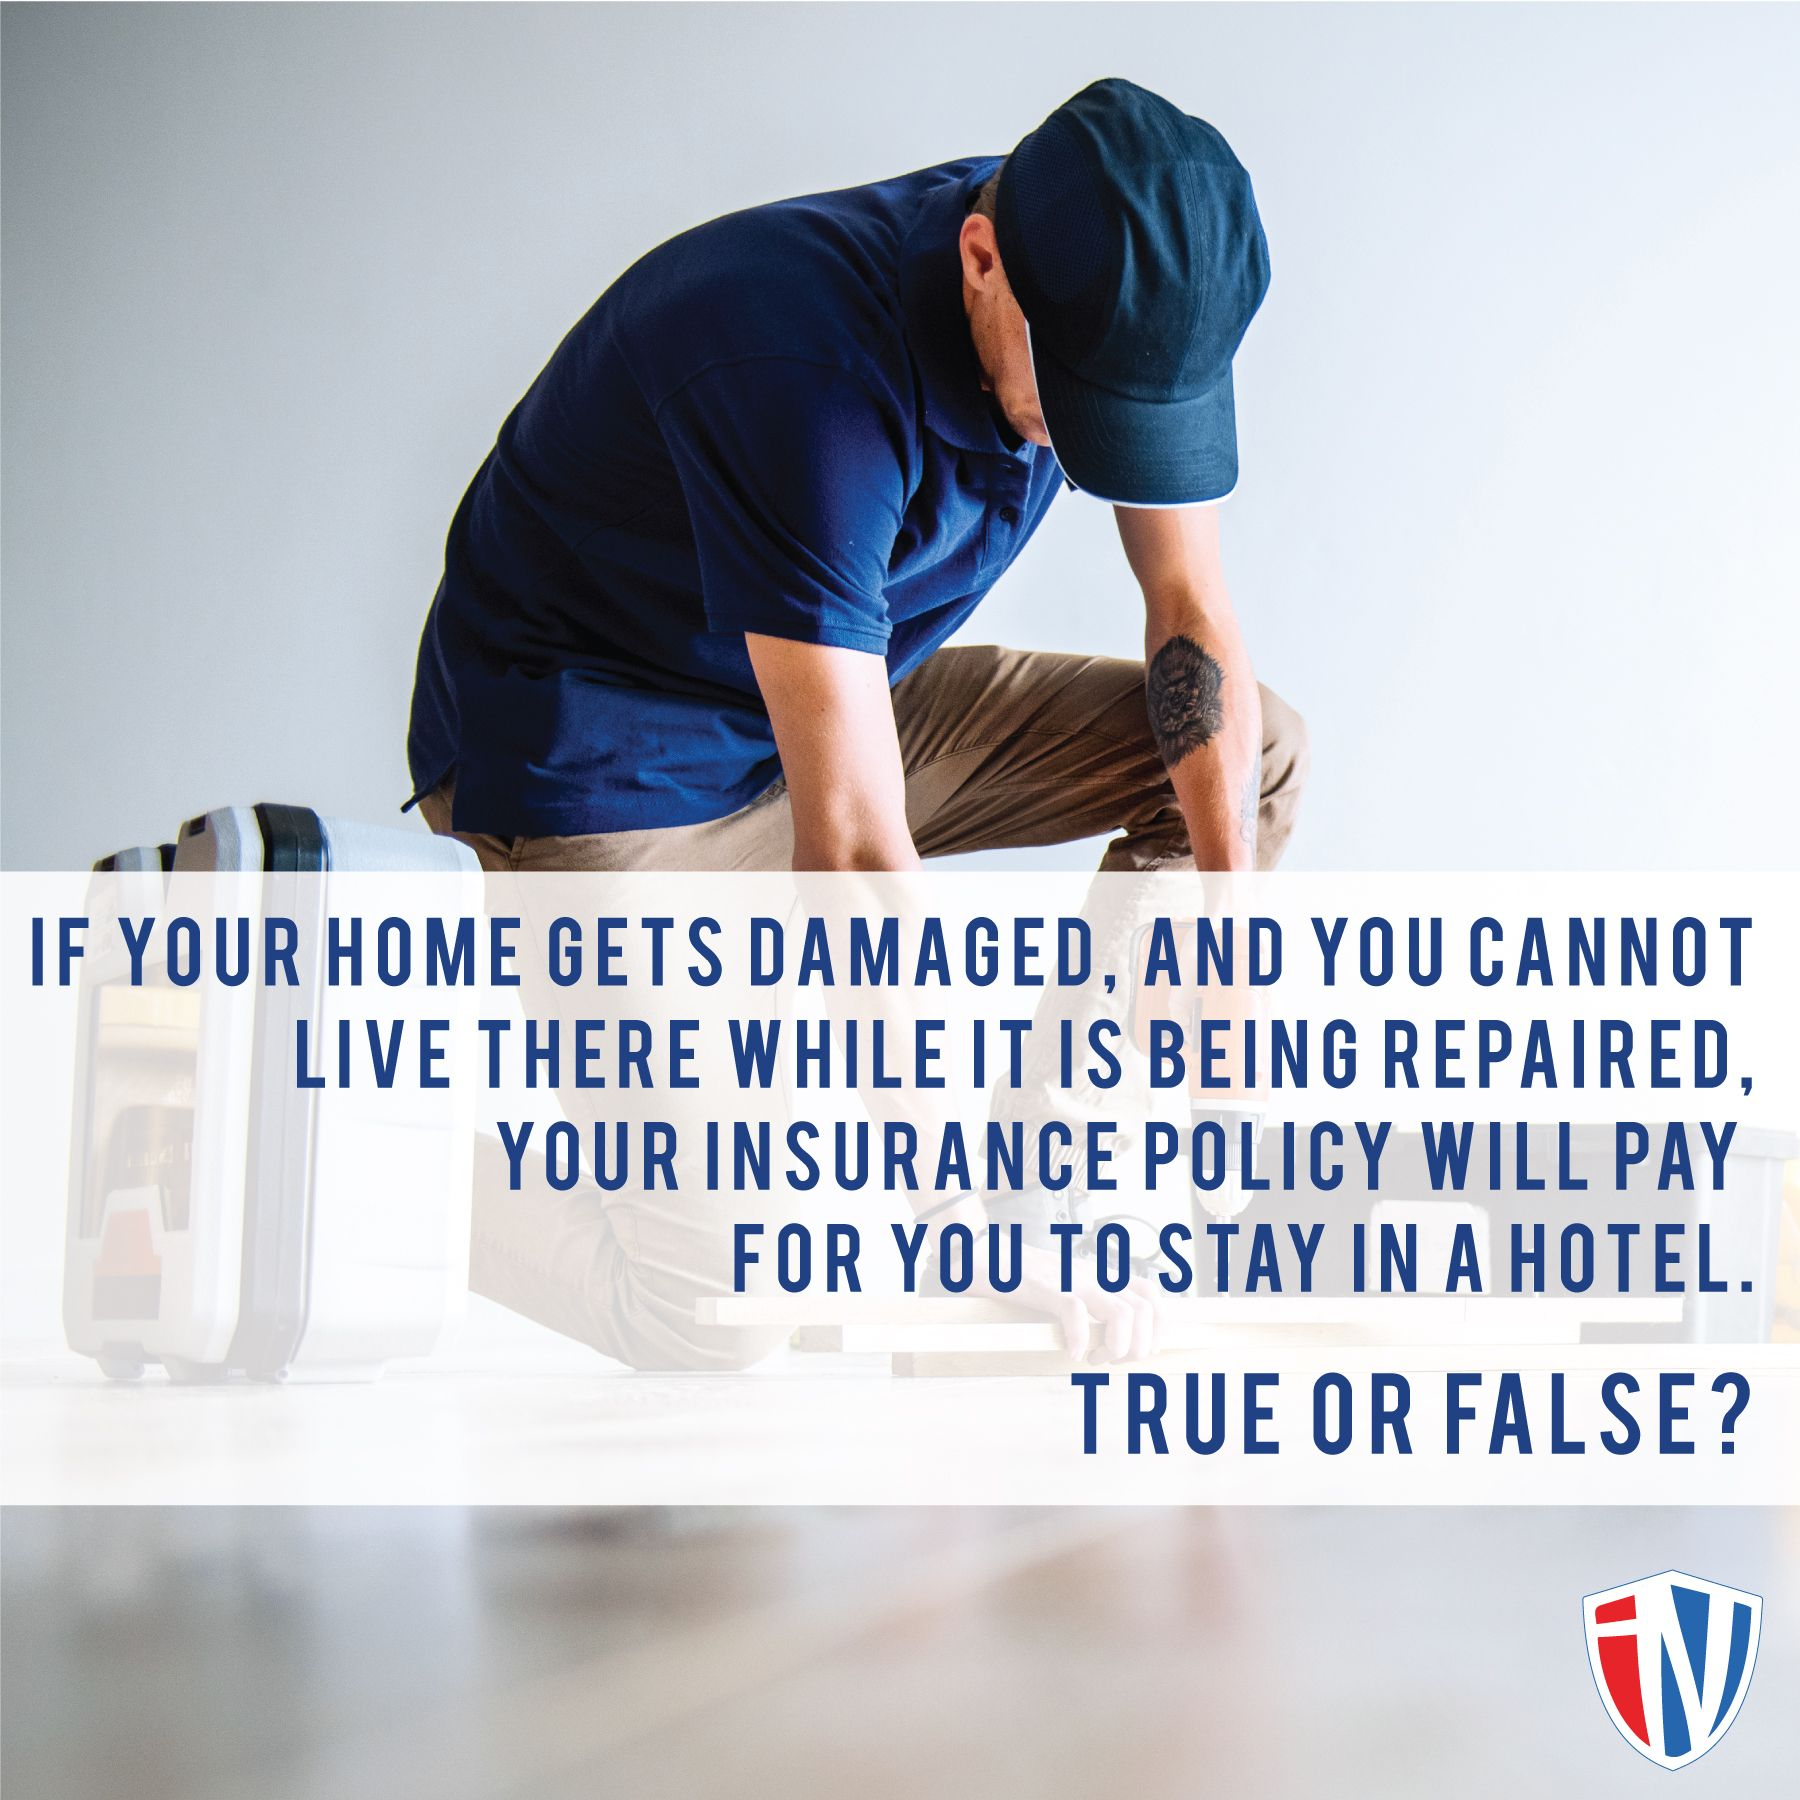 This Is True Only If Your Policy Includes Loss Of Use Coverage